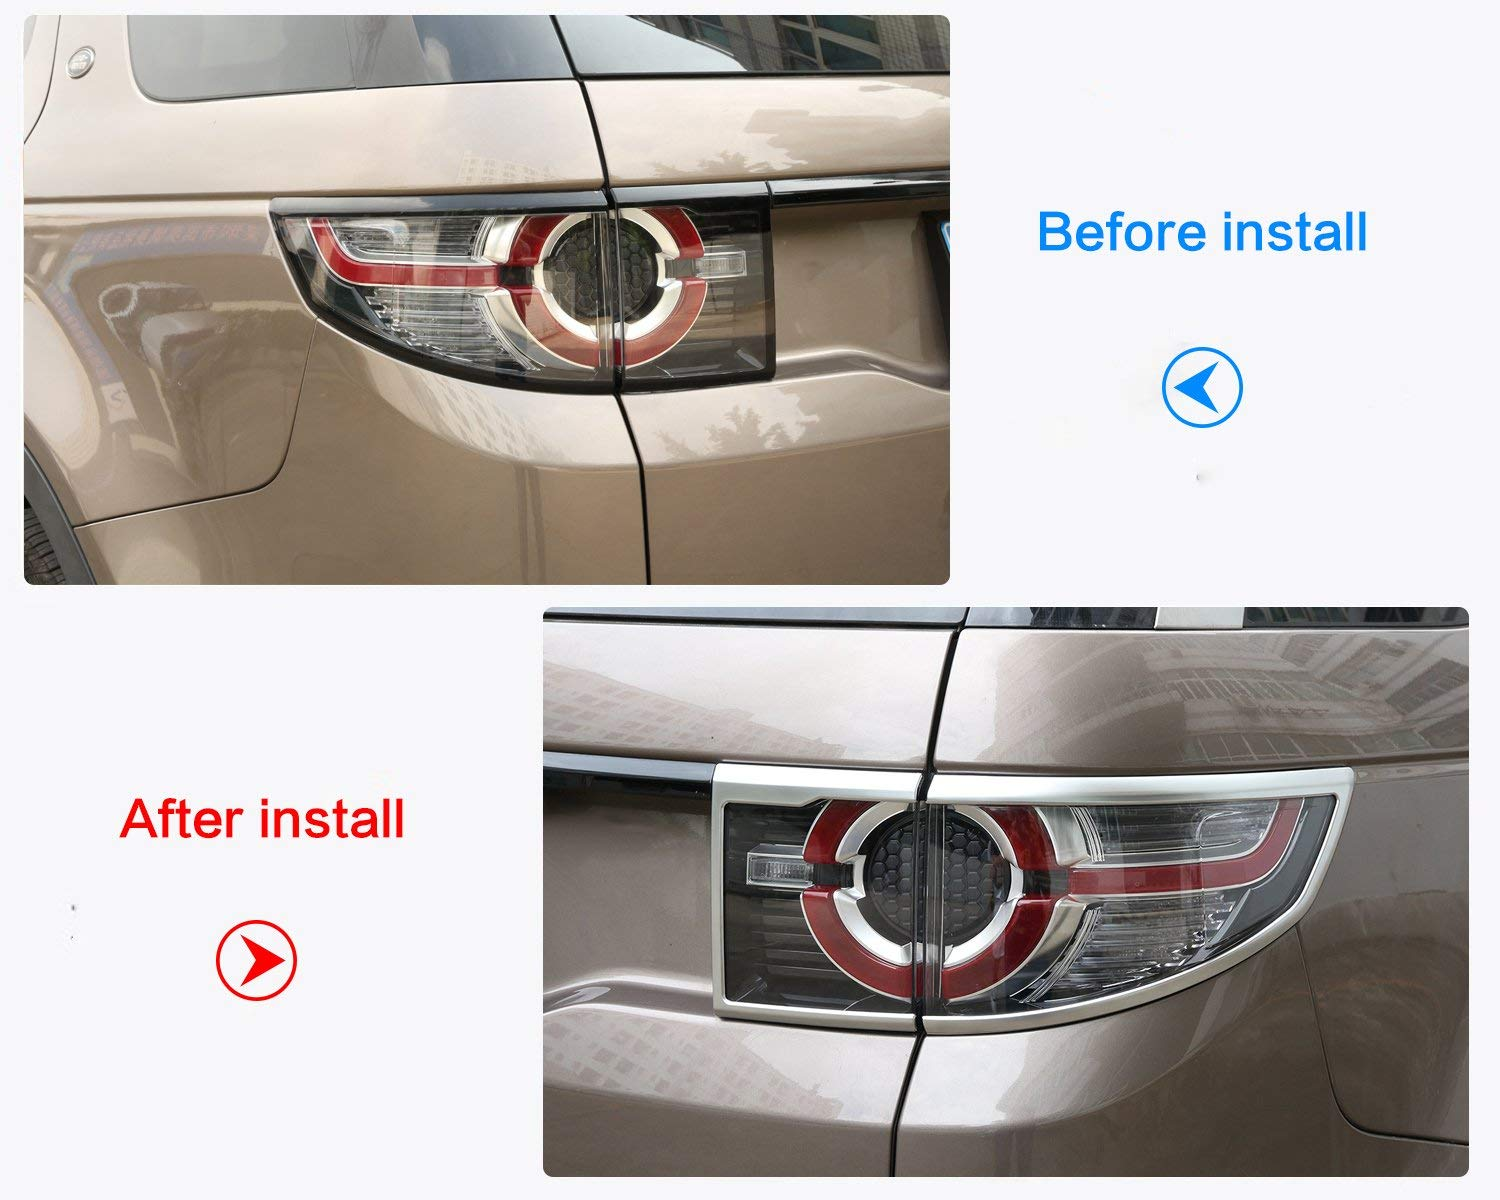 TongSheng ABS Chrome Rear Tail Lamp Frame Cover Trim 4pcs for Land Rover Discovery Sport 2015-2017